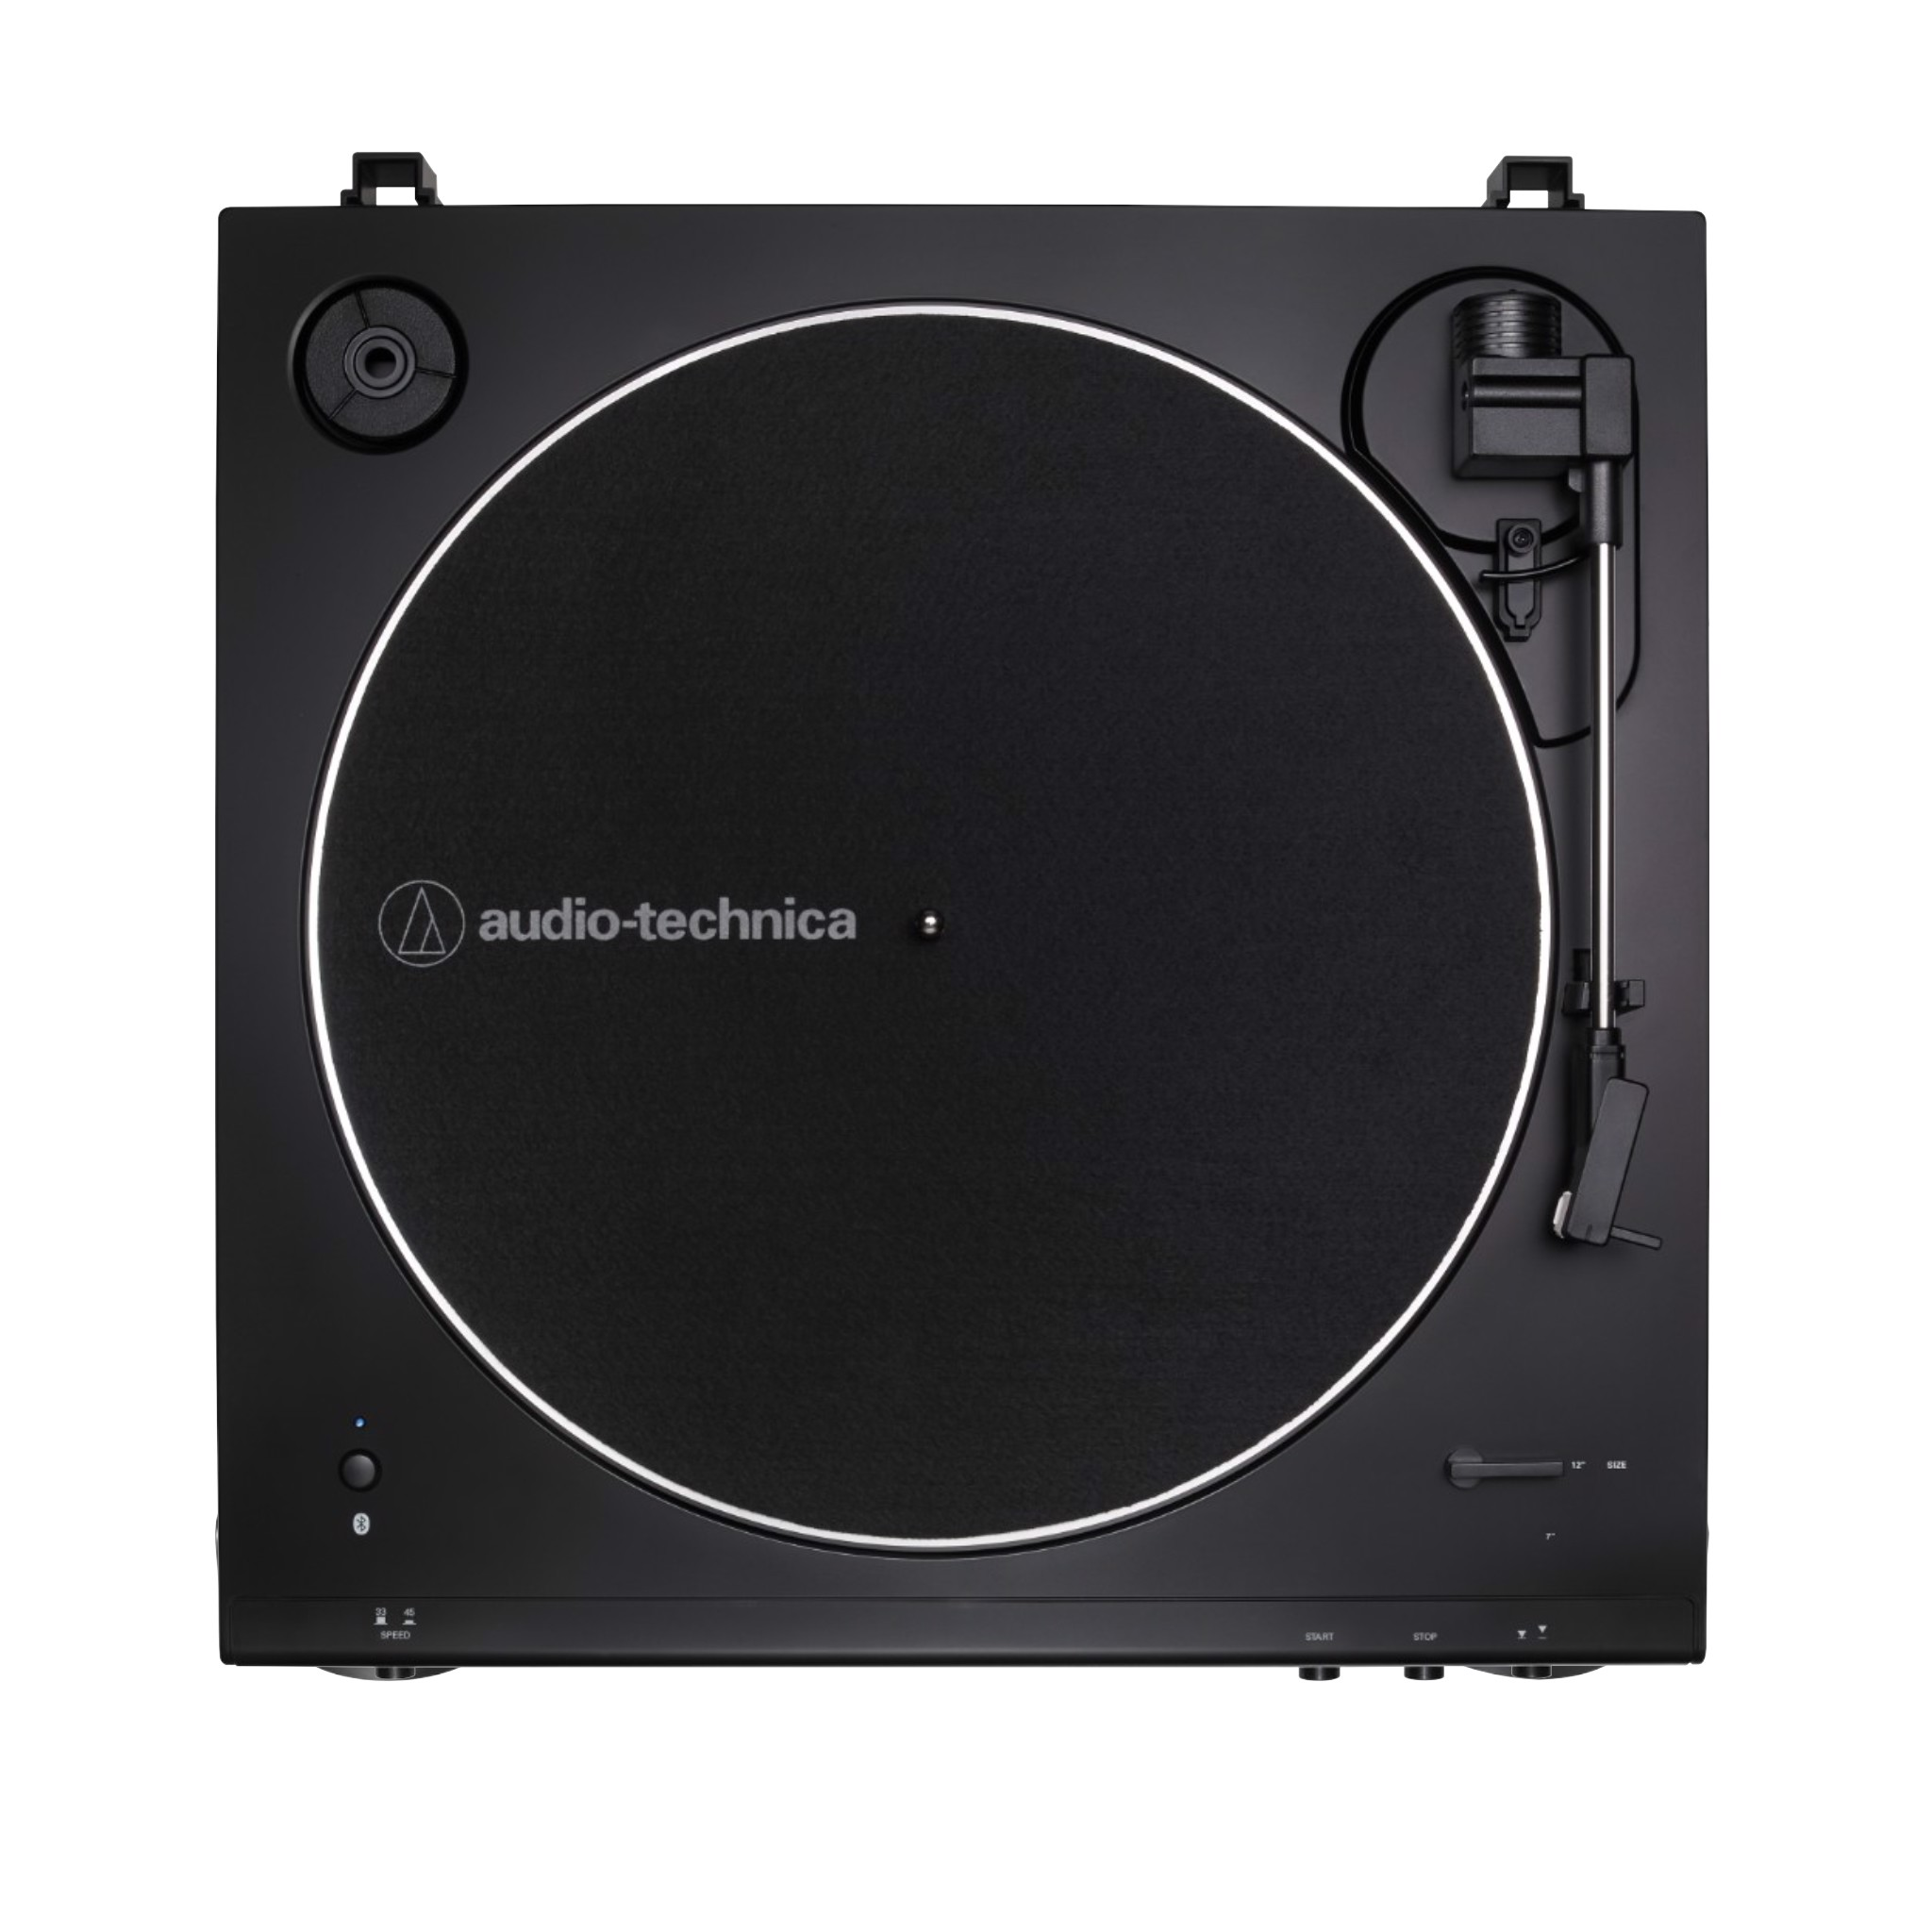 audio-technica-at-lp60xbt